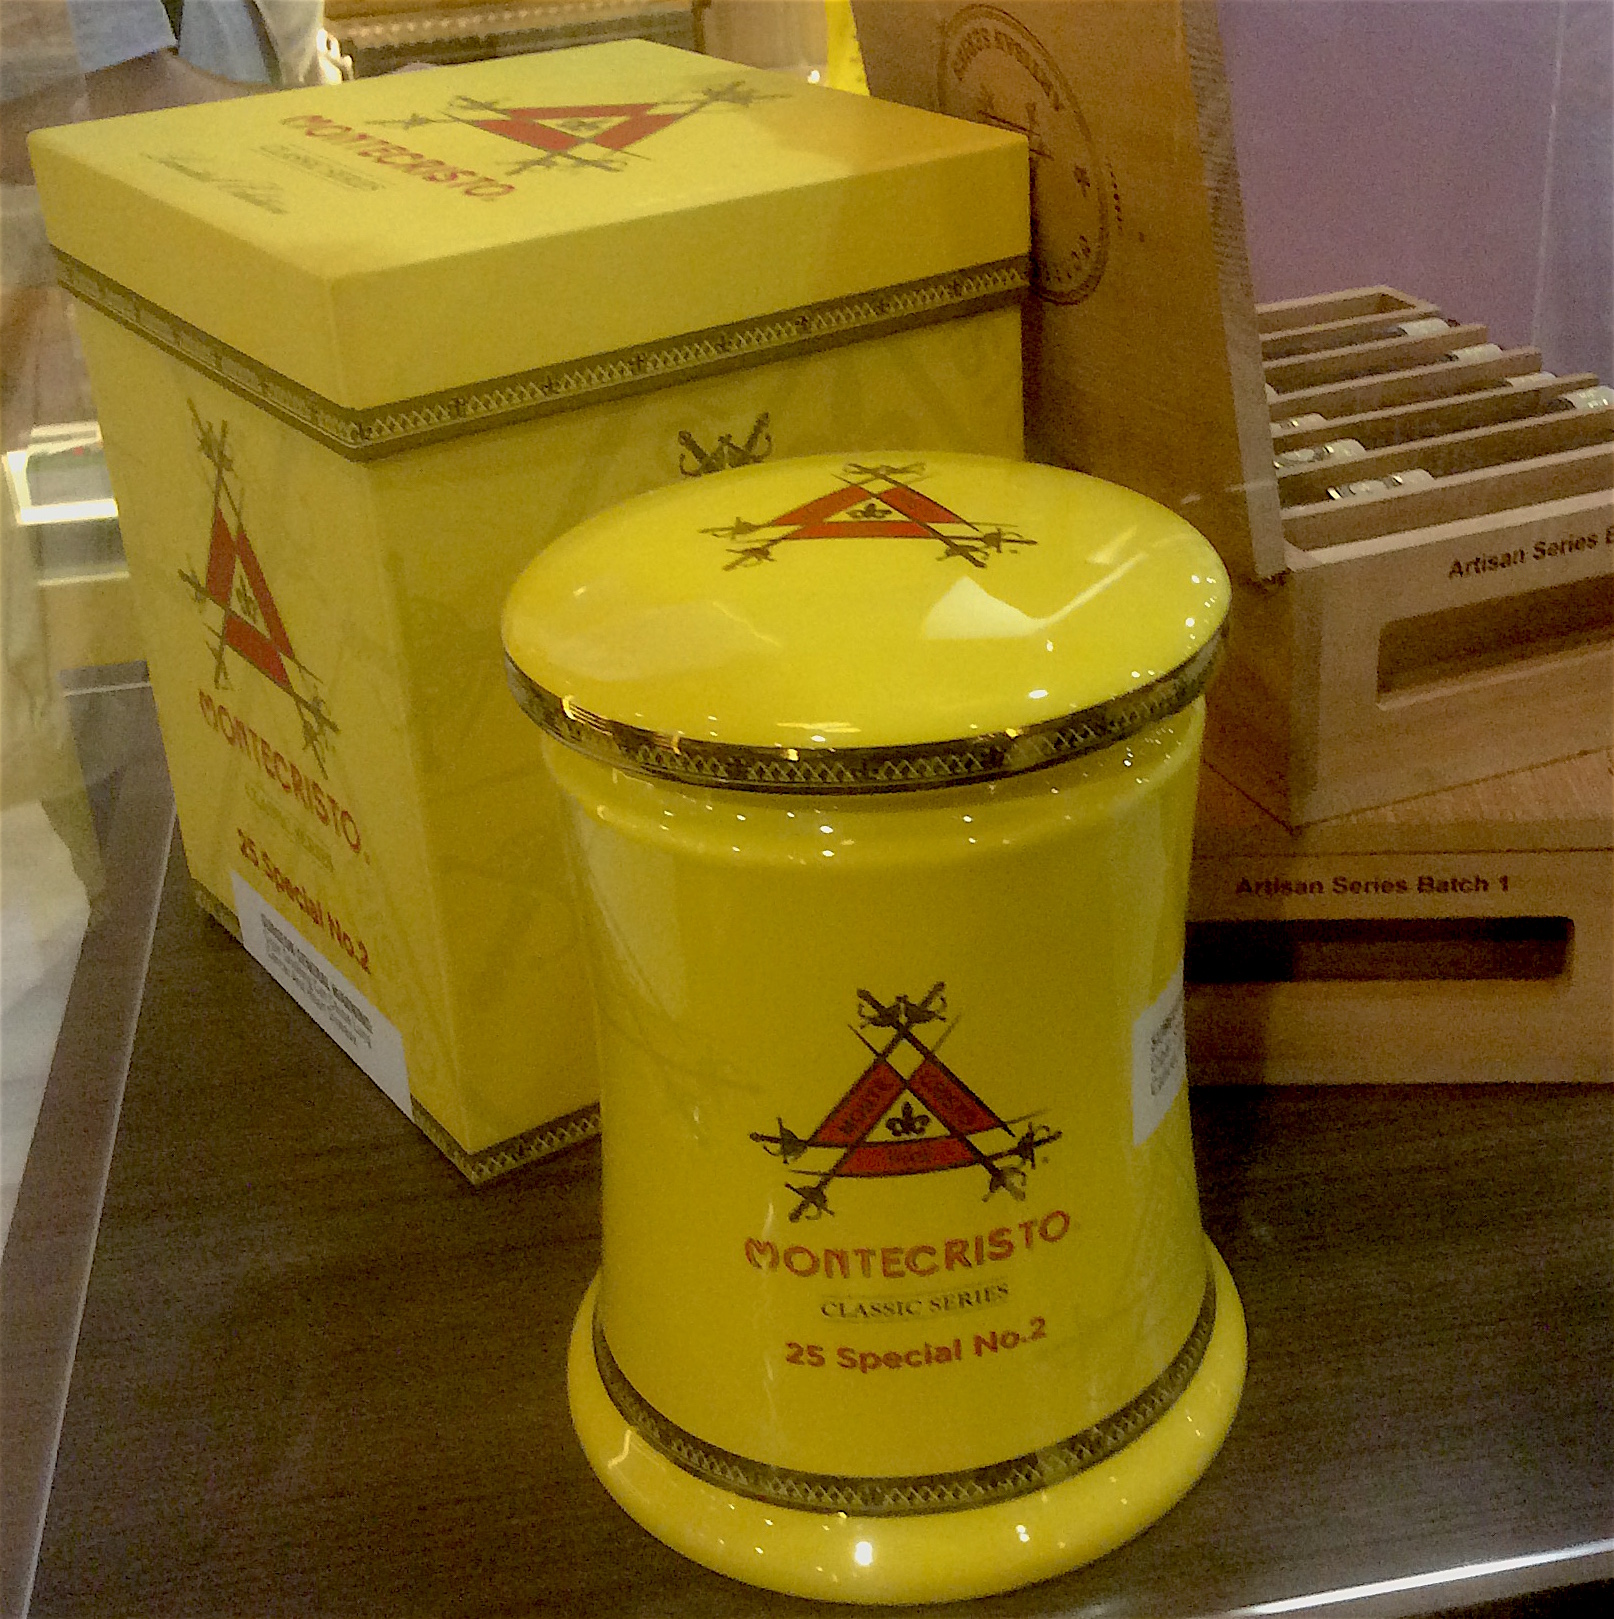 Cigar News: Montecristo Classic Series Special No. 2 Jars Introduced at 2016 IPCPR